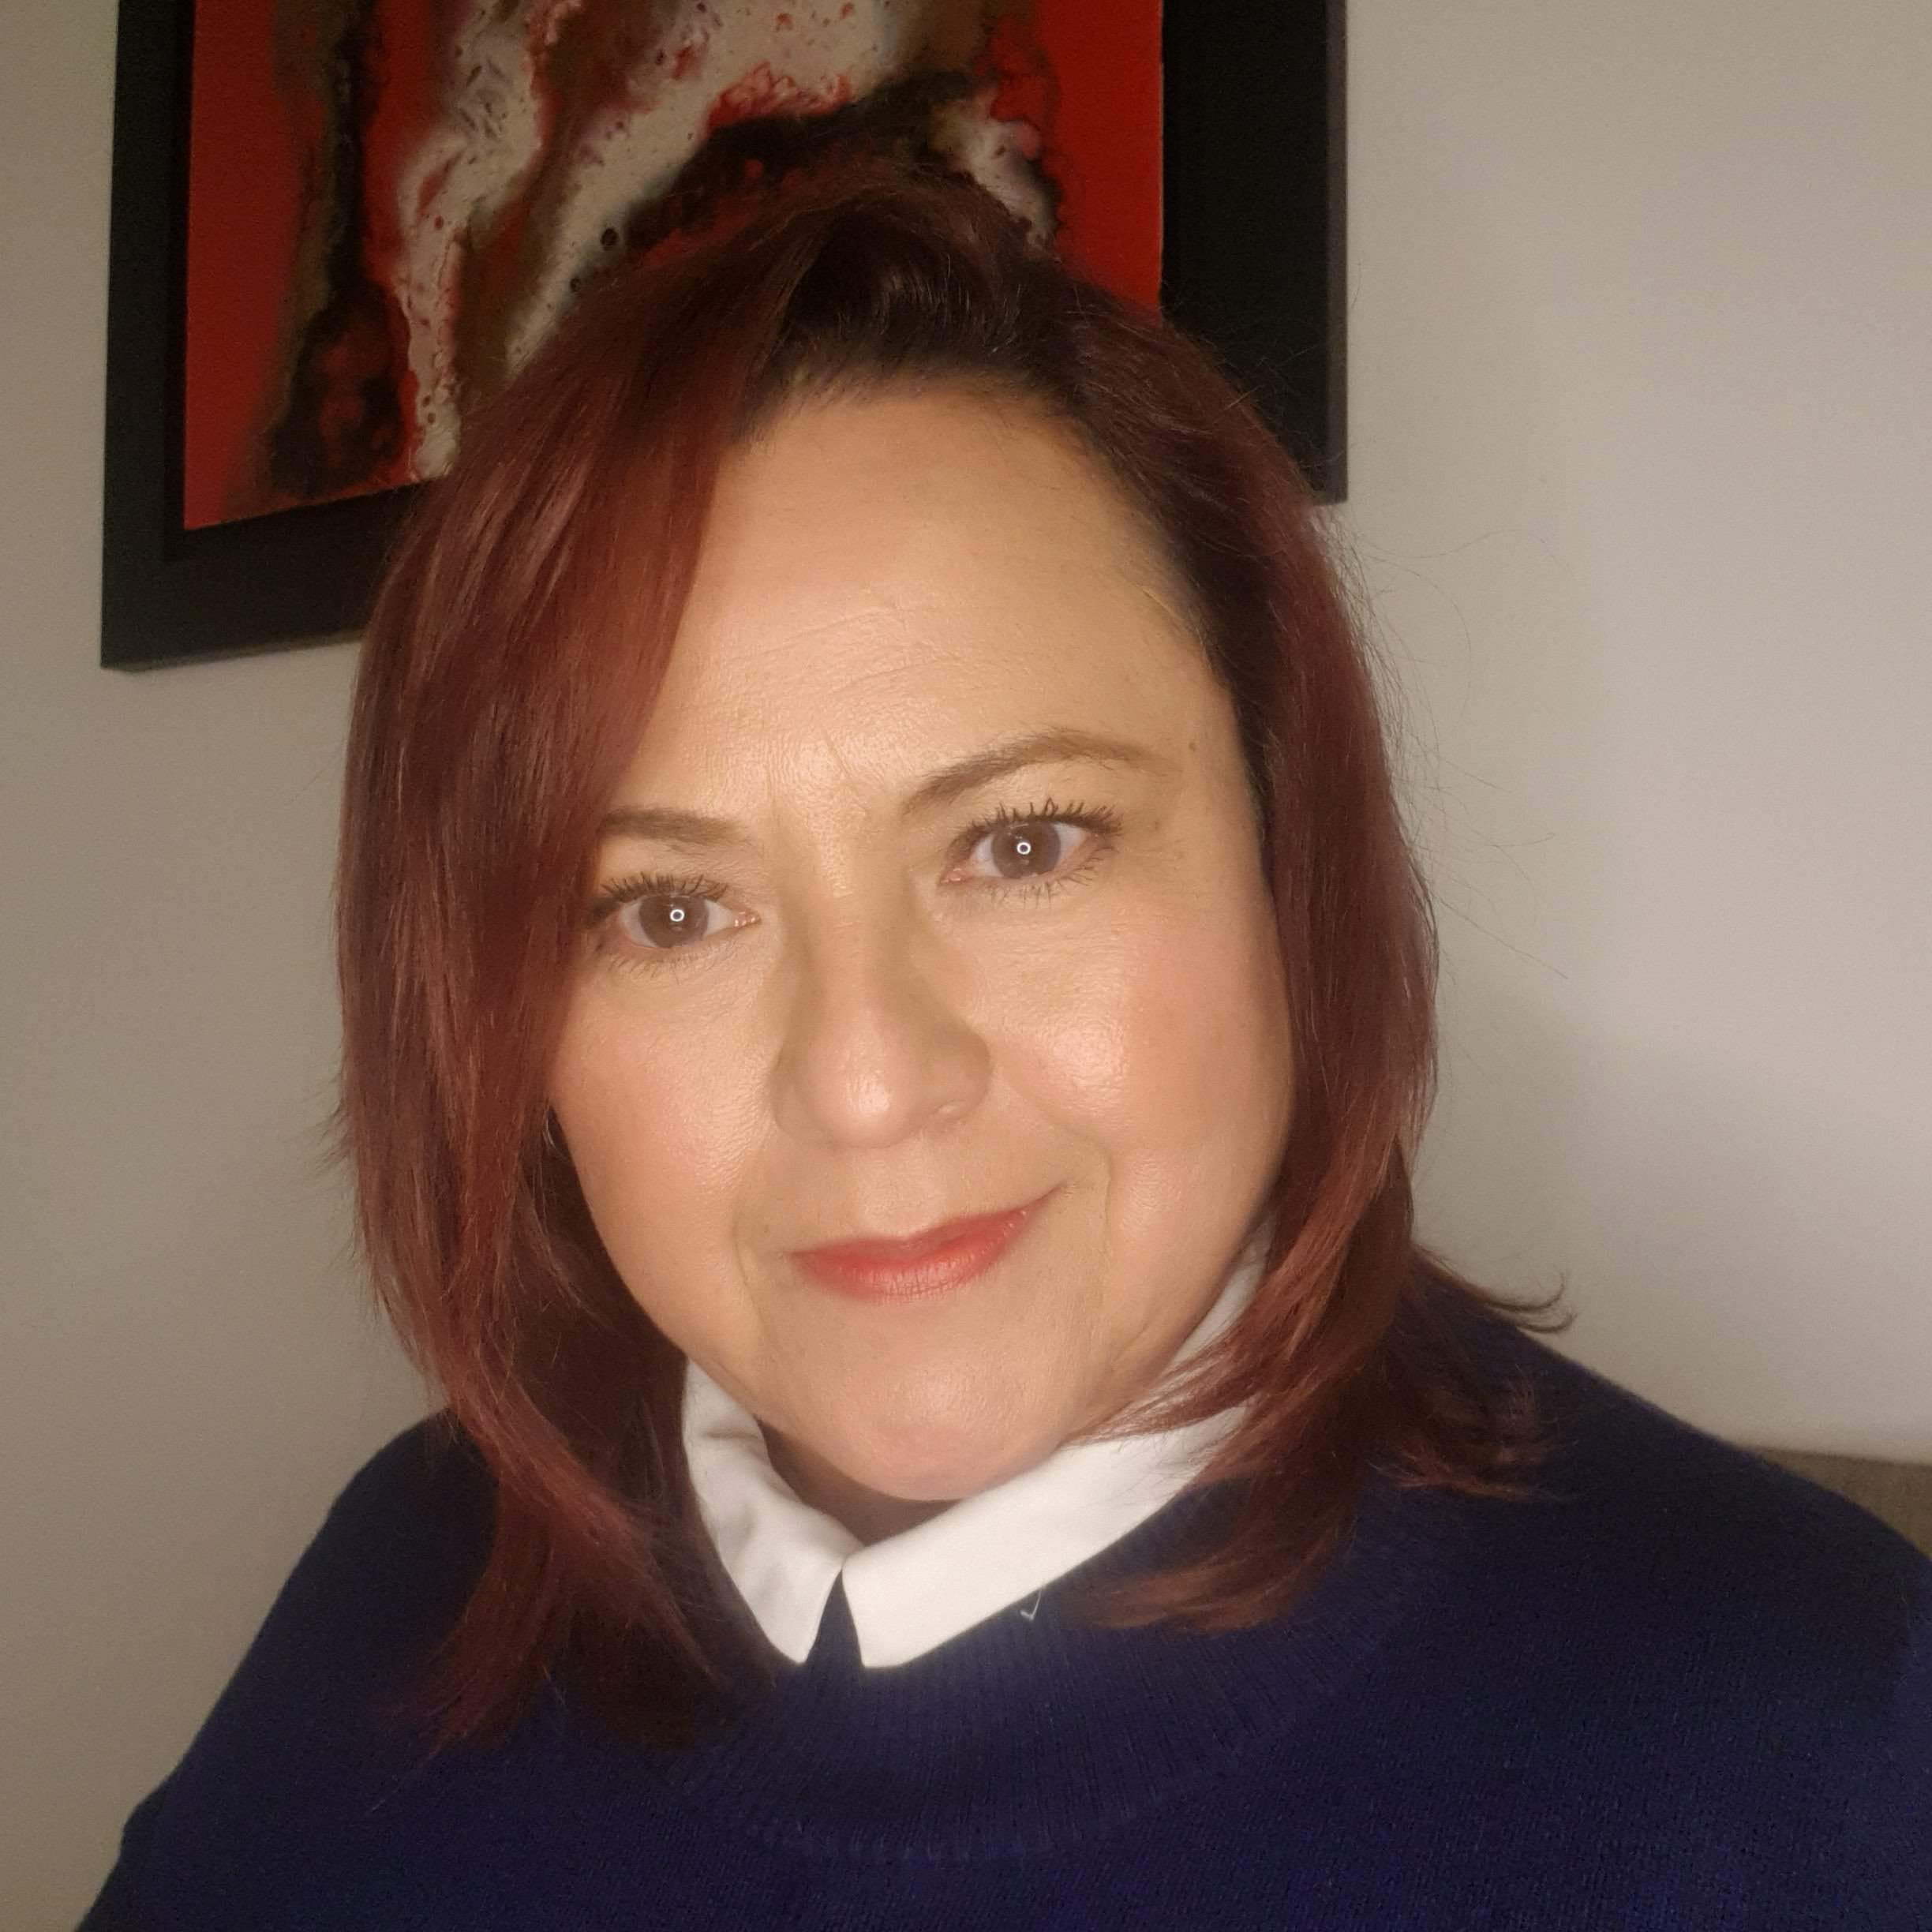 Ligia is a qualified lawyer who has also developed a career in social media marketing and organising international exhibitions in London, working with very many international artists such as Young-sung Kim (Korea), Nancy Wood (UK), Mrs Colorberry (Germany) and many others. She is also Partner in the Mexican and UK firm LawBiz Consulting Group.